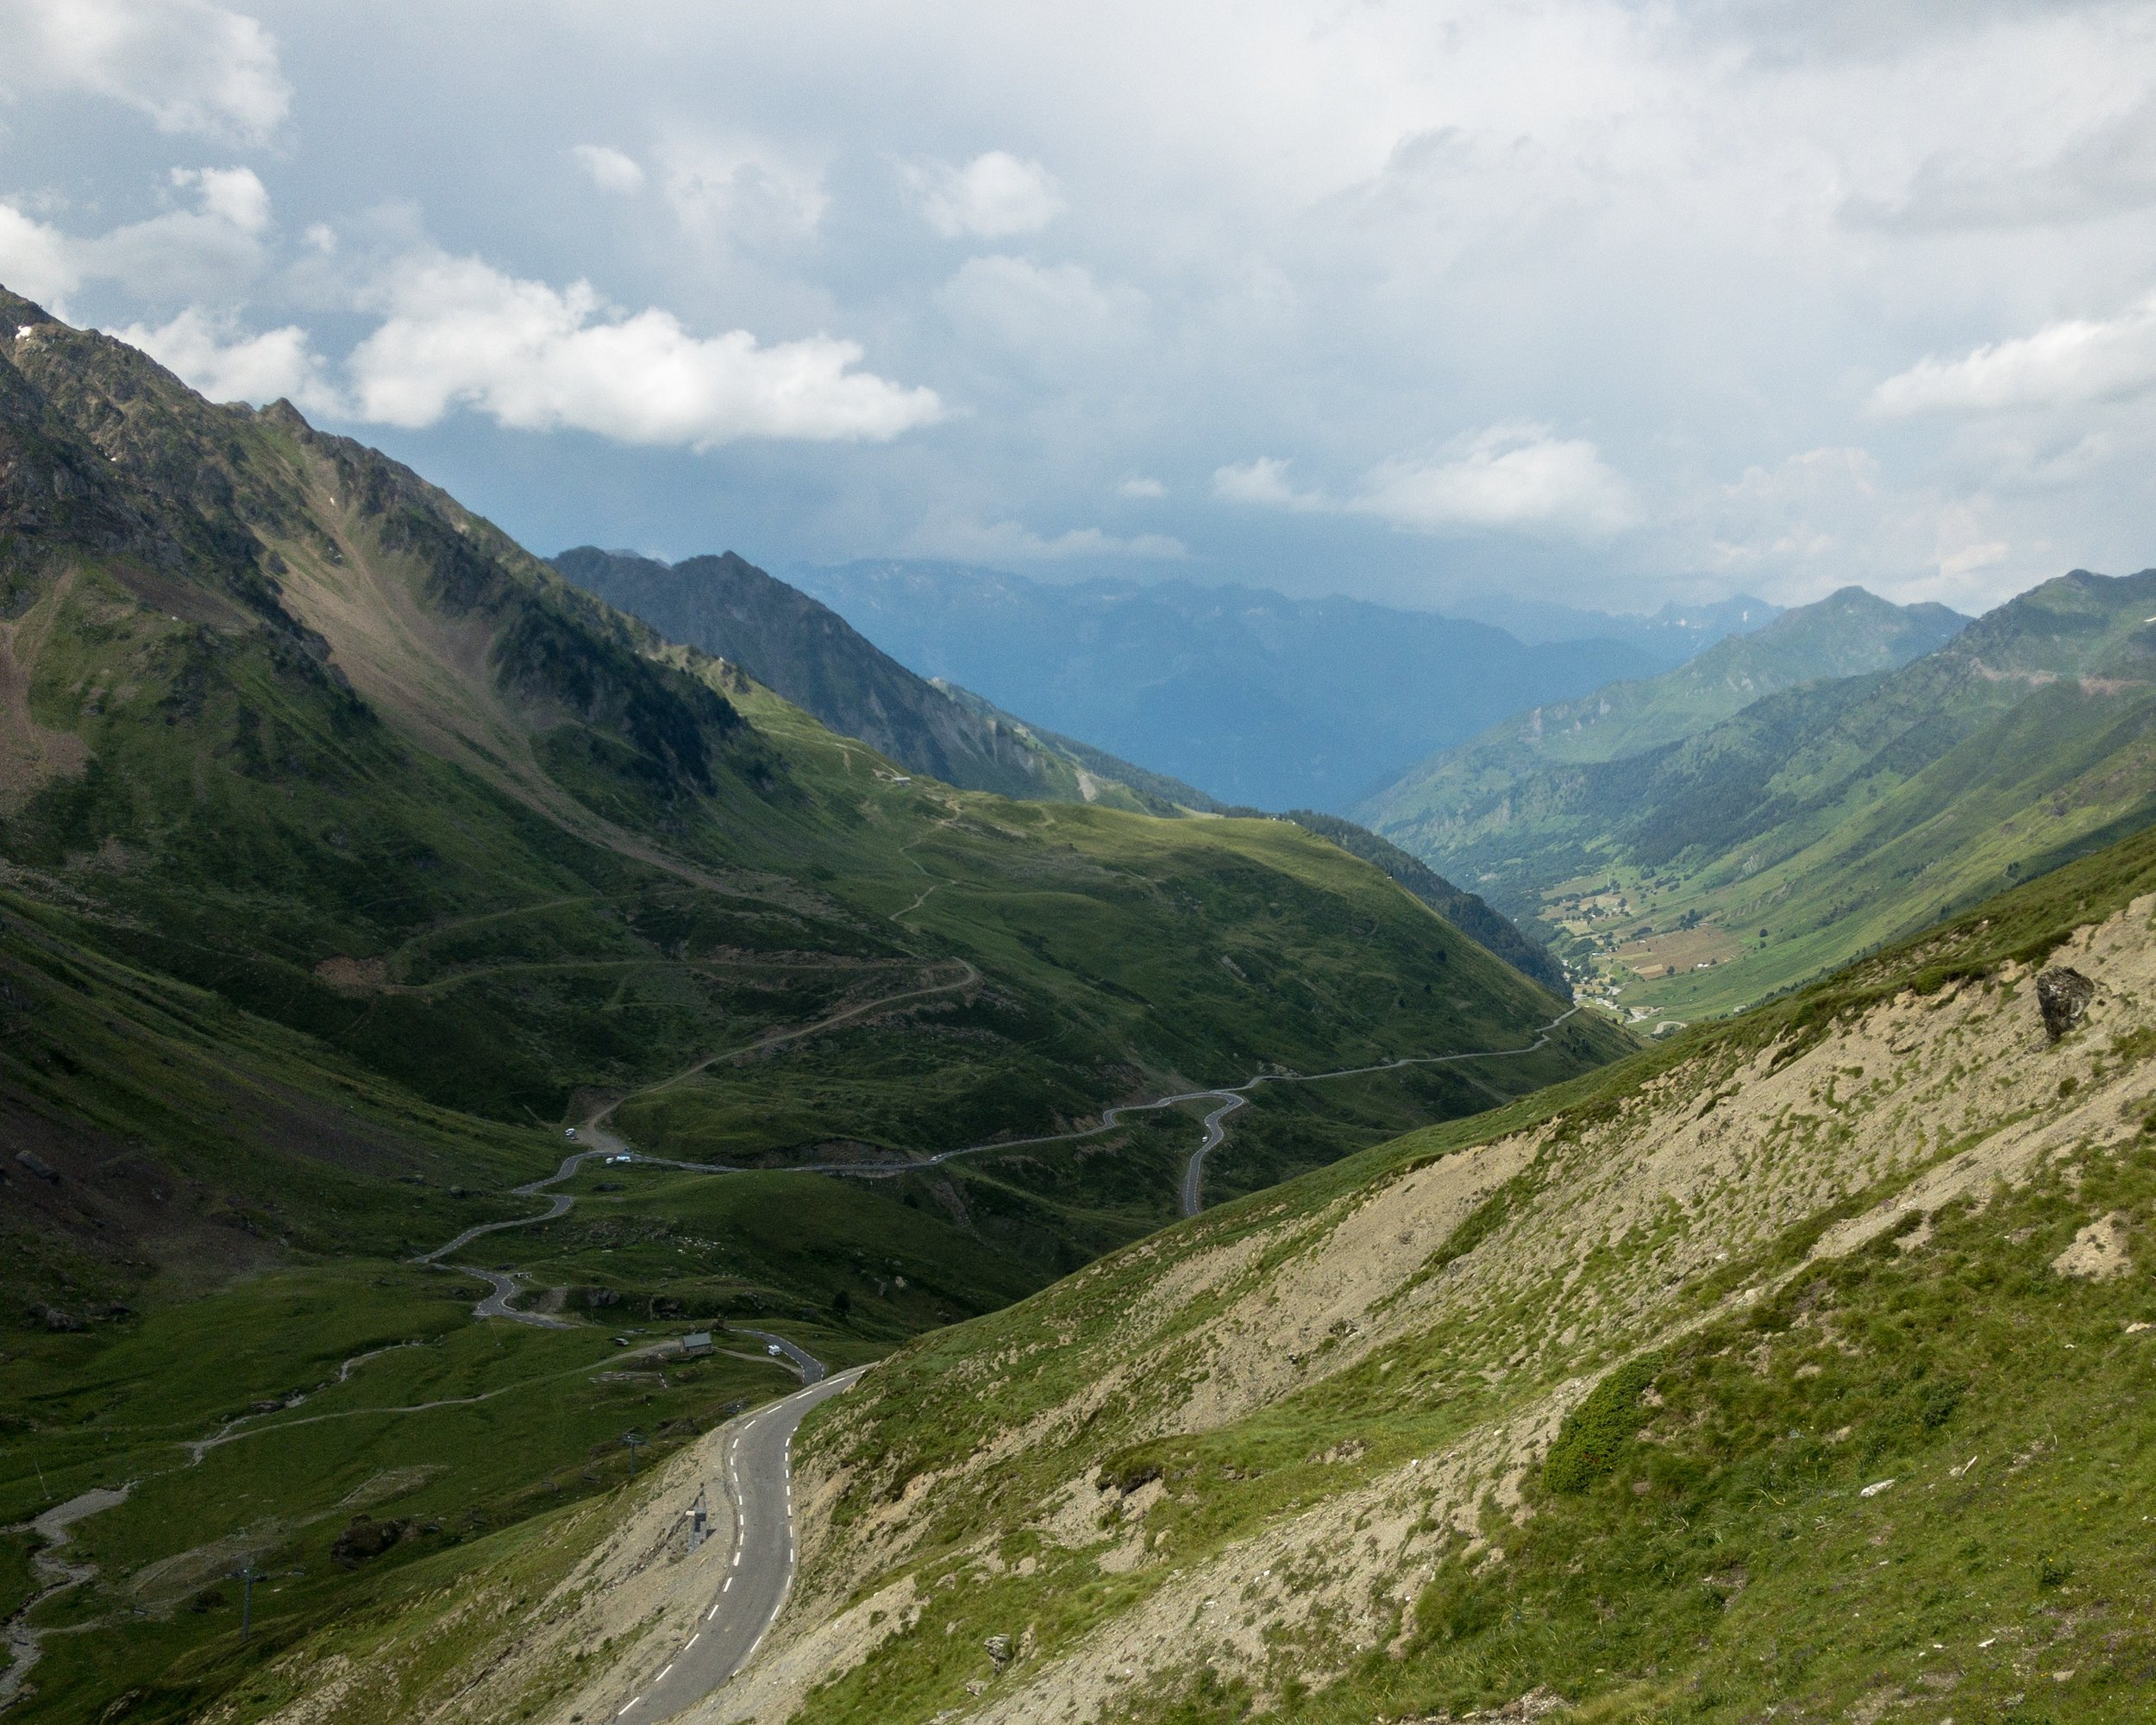 Cycling Holidays - Not only can we sell you a bike and keep it running beautifully we can also take you to beautiful places to ride it. We have run trips to The Alps, The Pyrenees, Majorca and to the spring classics.We take your bike and your kit from Clitheroe to the holiday destination - no nightmare bike bags!Whilst there you will be guided through the best roads in the area. As well as getting a free checkup of your bike before every ride to make sure it is in tip top condition whilst you're away.